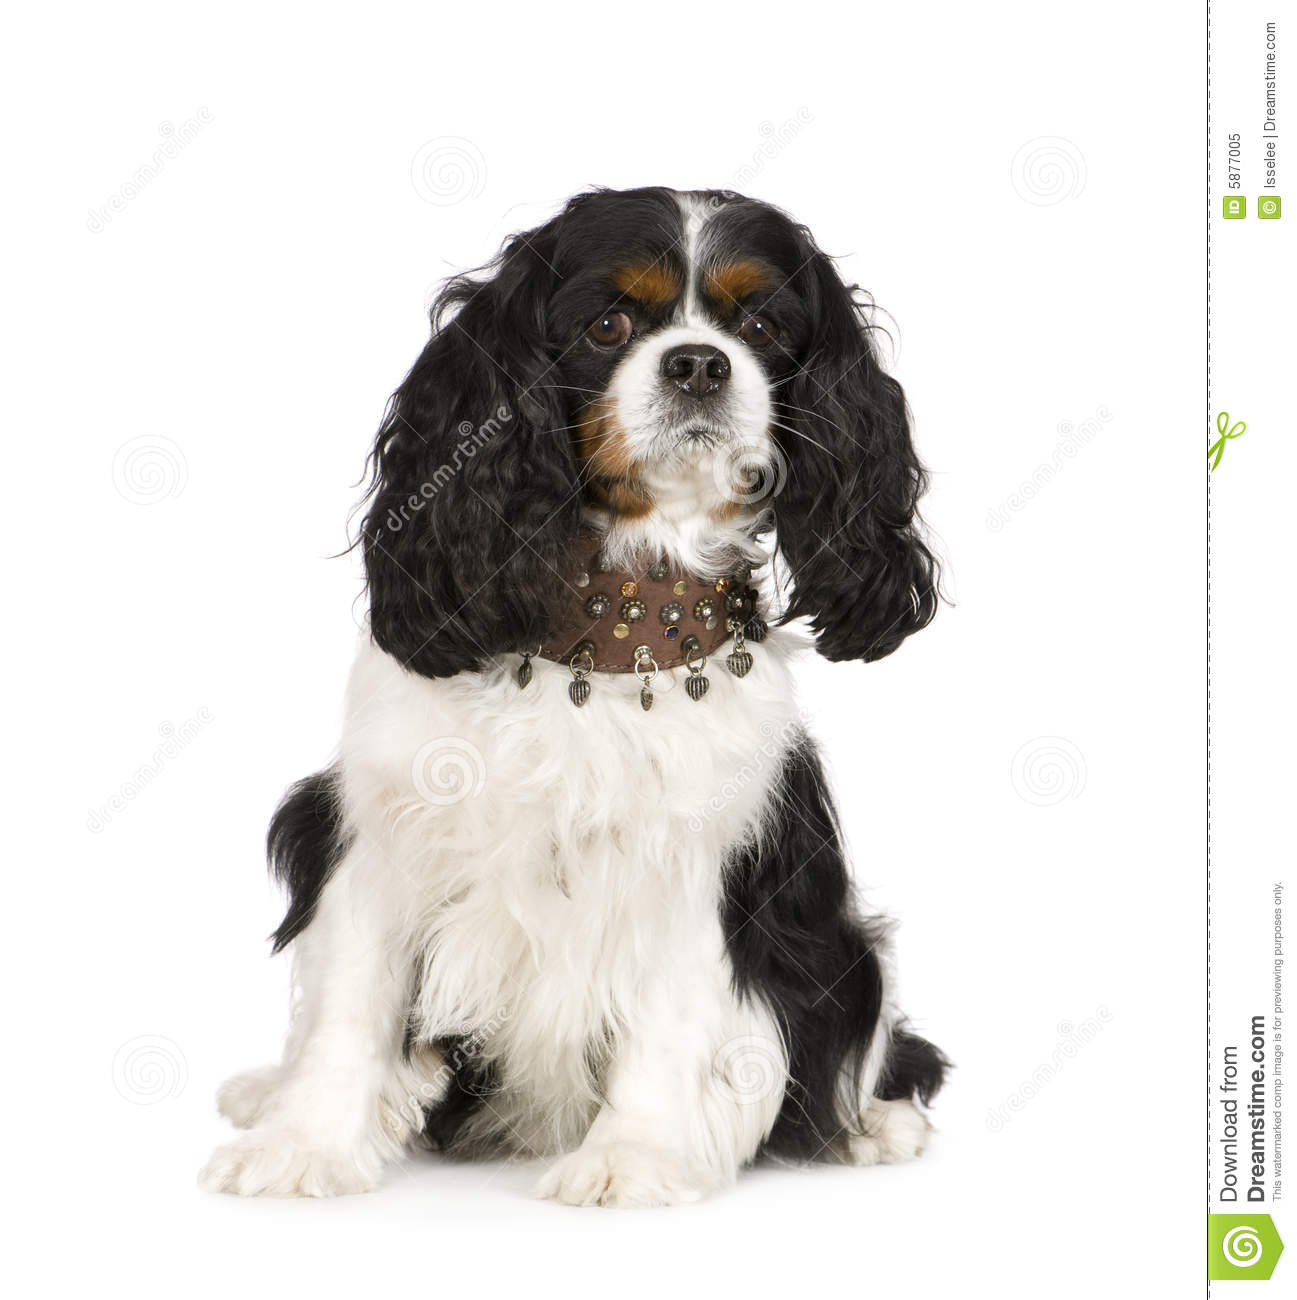 Cavalier king charles spaniel 6 years in front of a white background